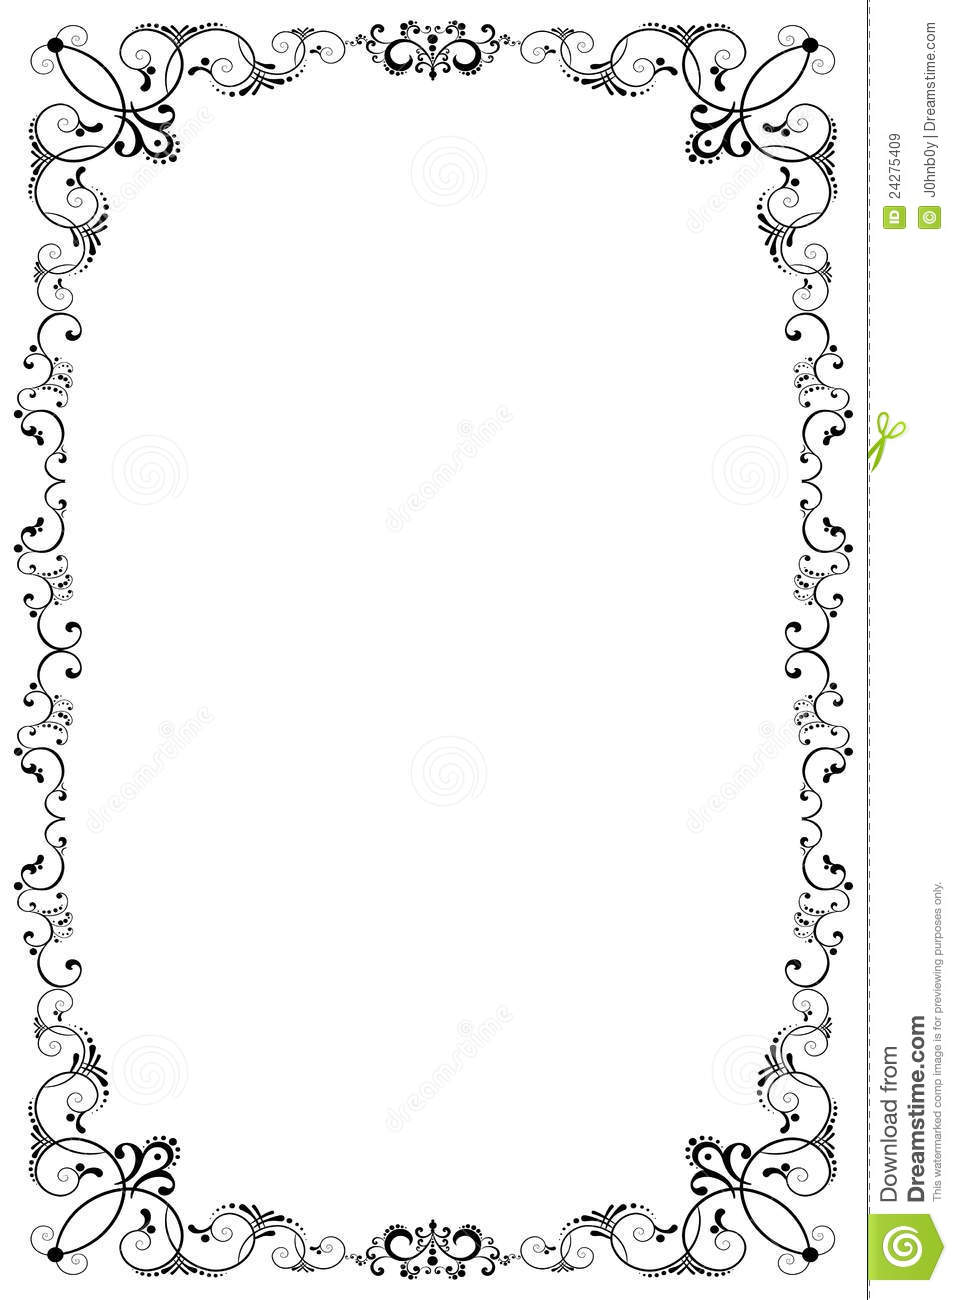 Floral Border Royalty Free Stock Images - Image: 24275409